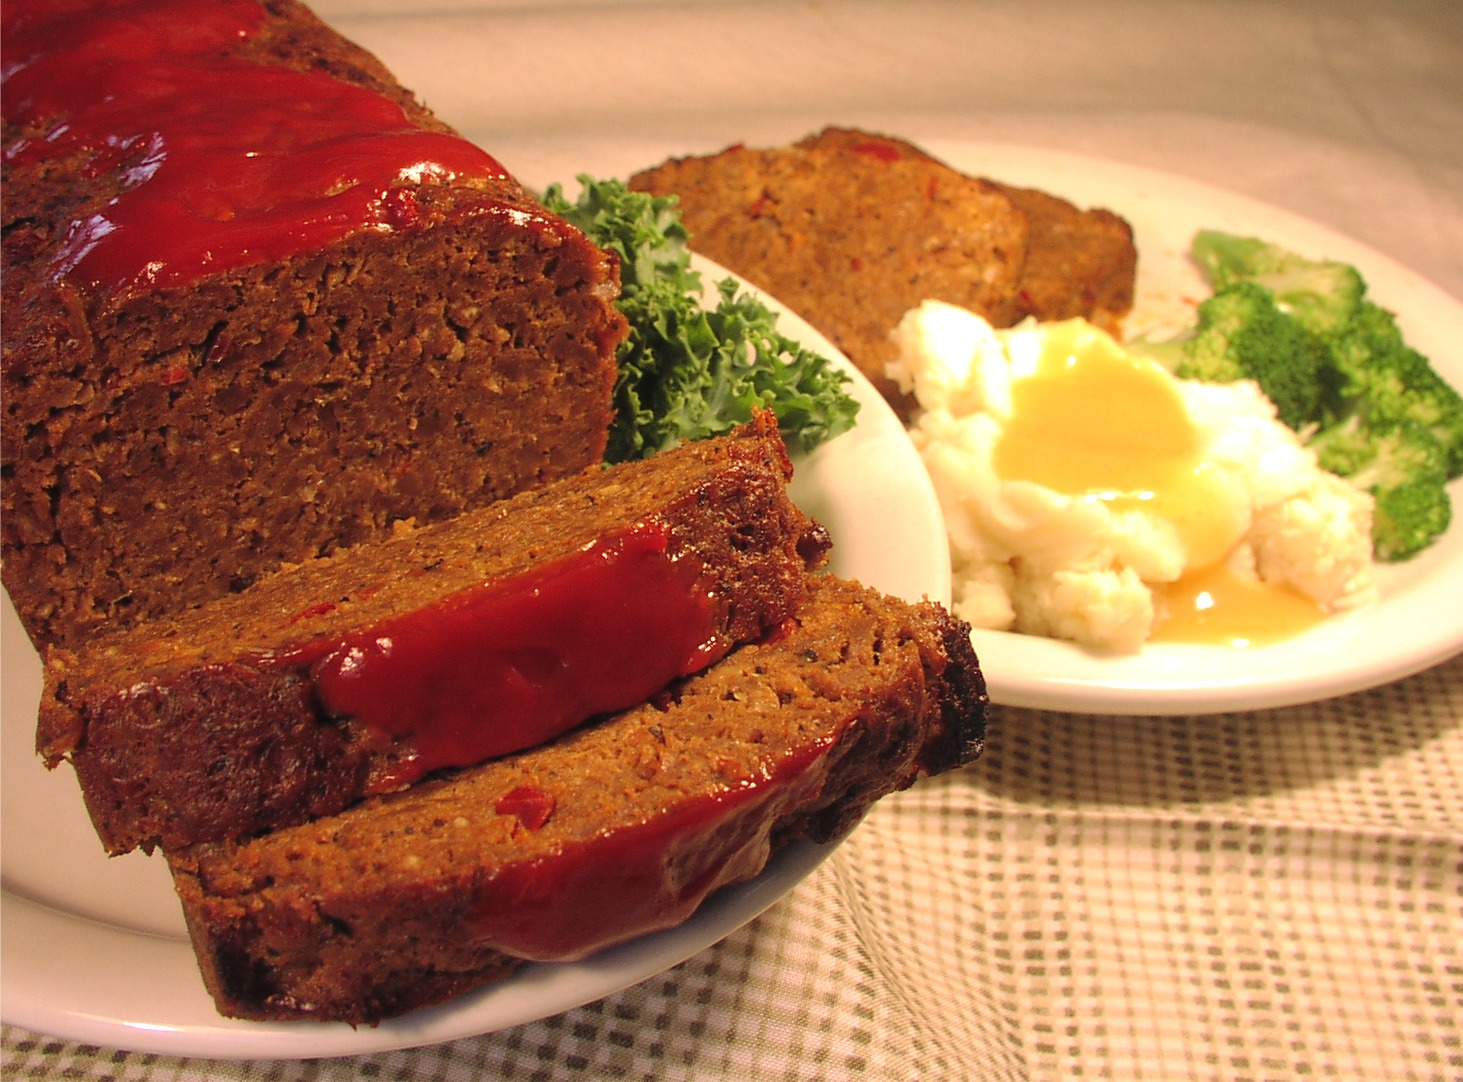 Meatloaf just doesn't get any respect. It never has been able to rise ...